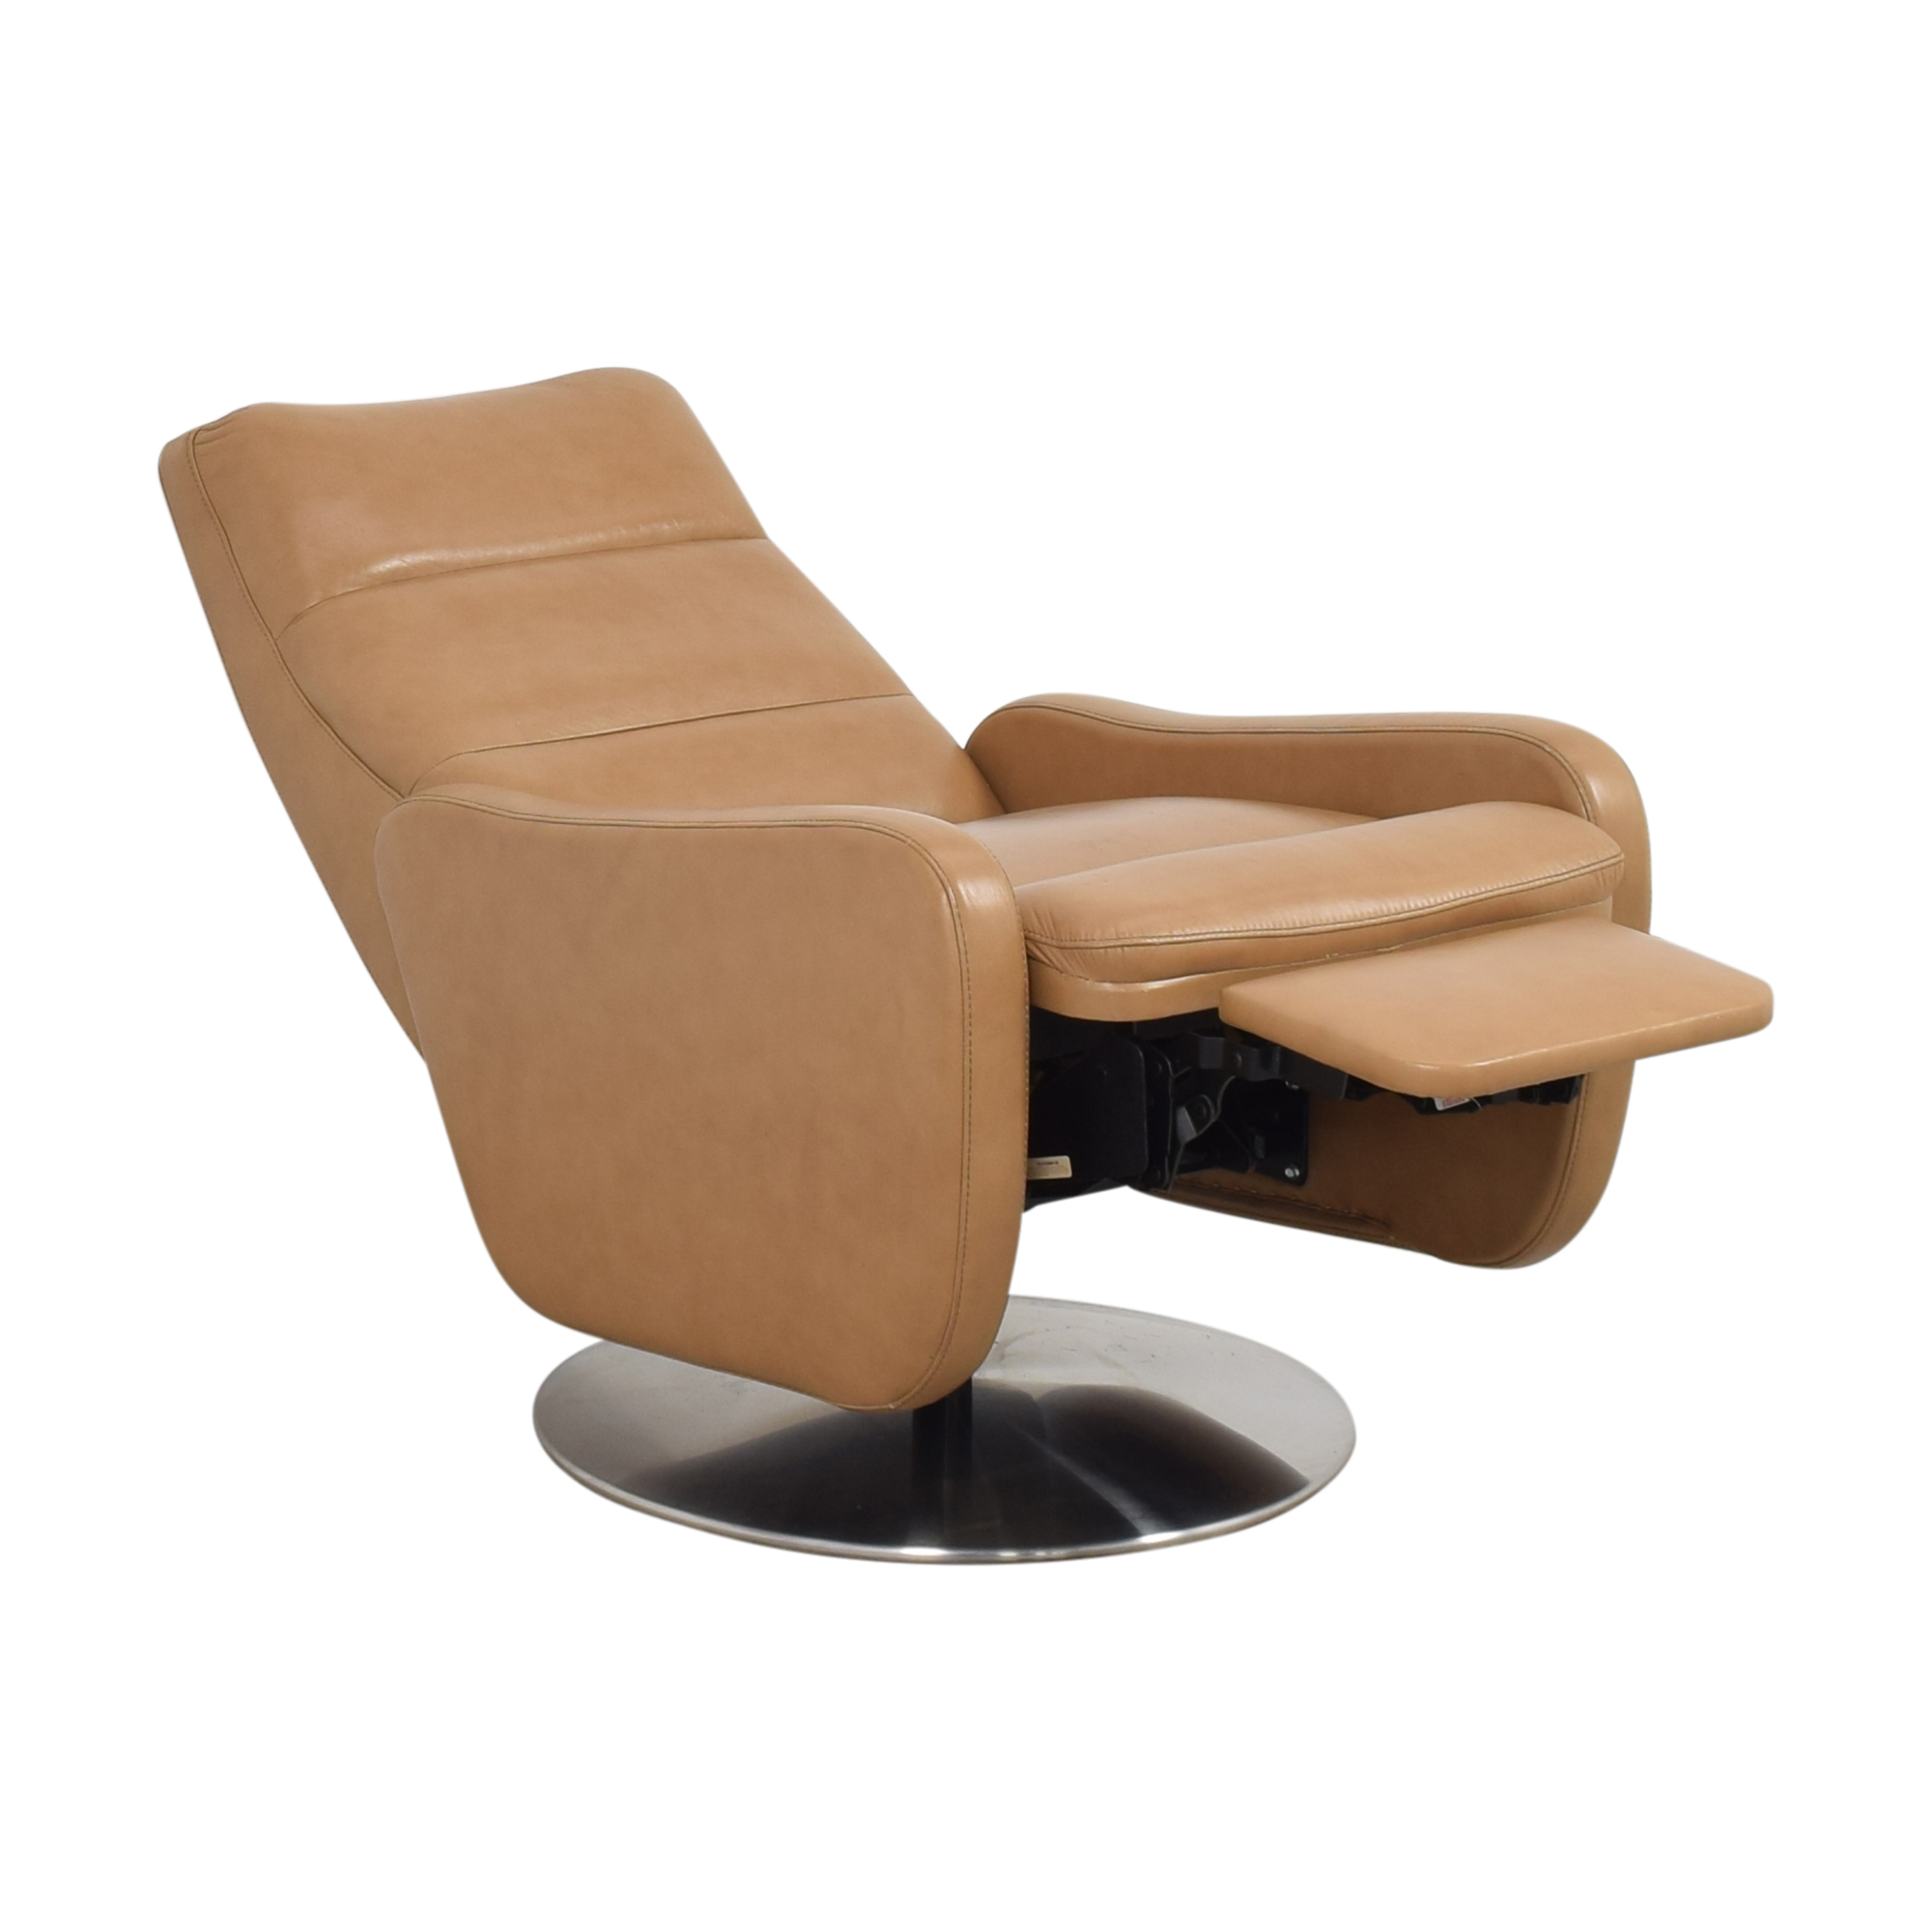 Elite Leather Company Aries Recliner / Recliners